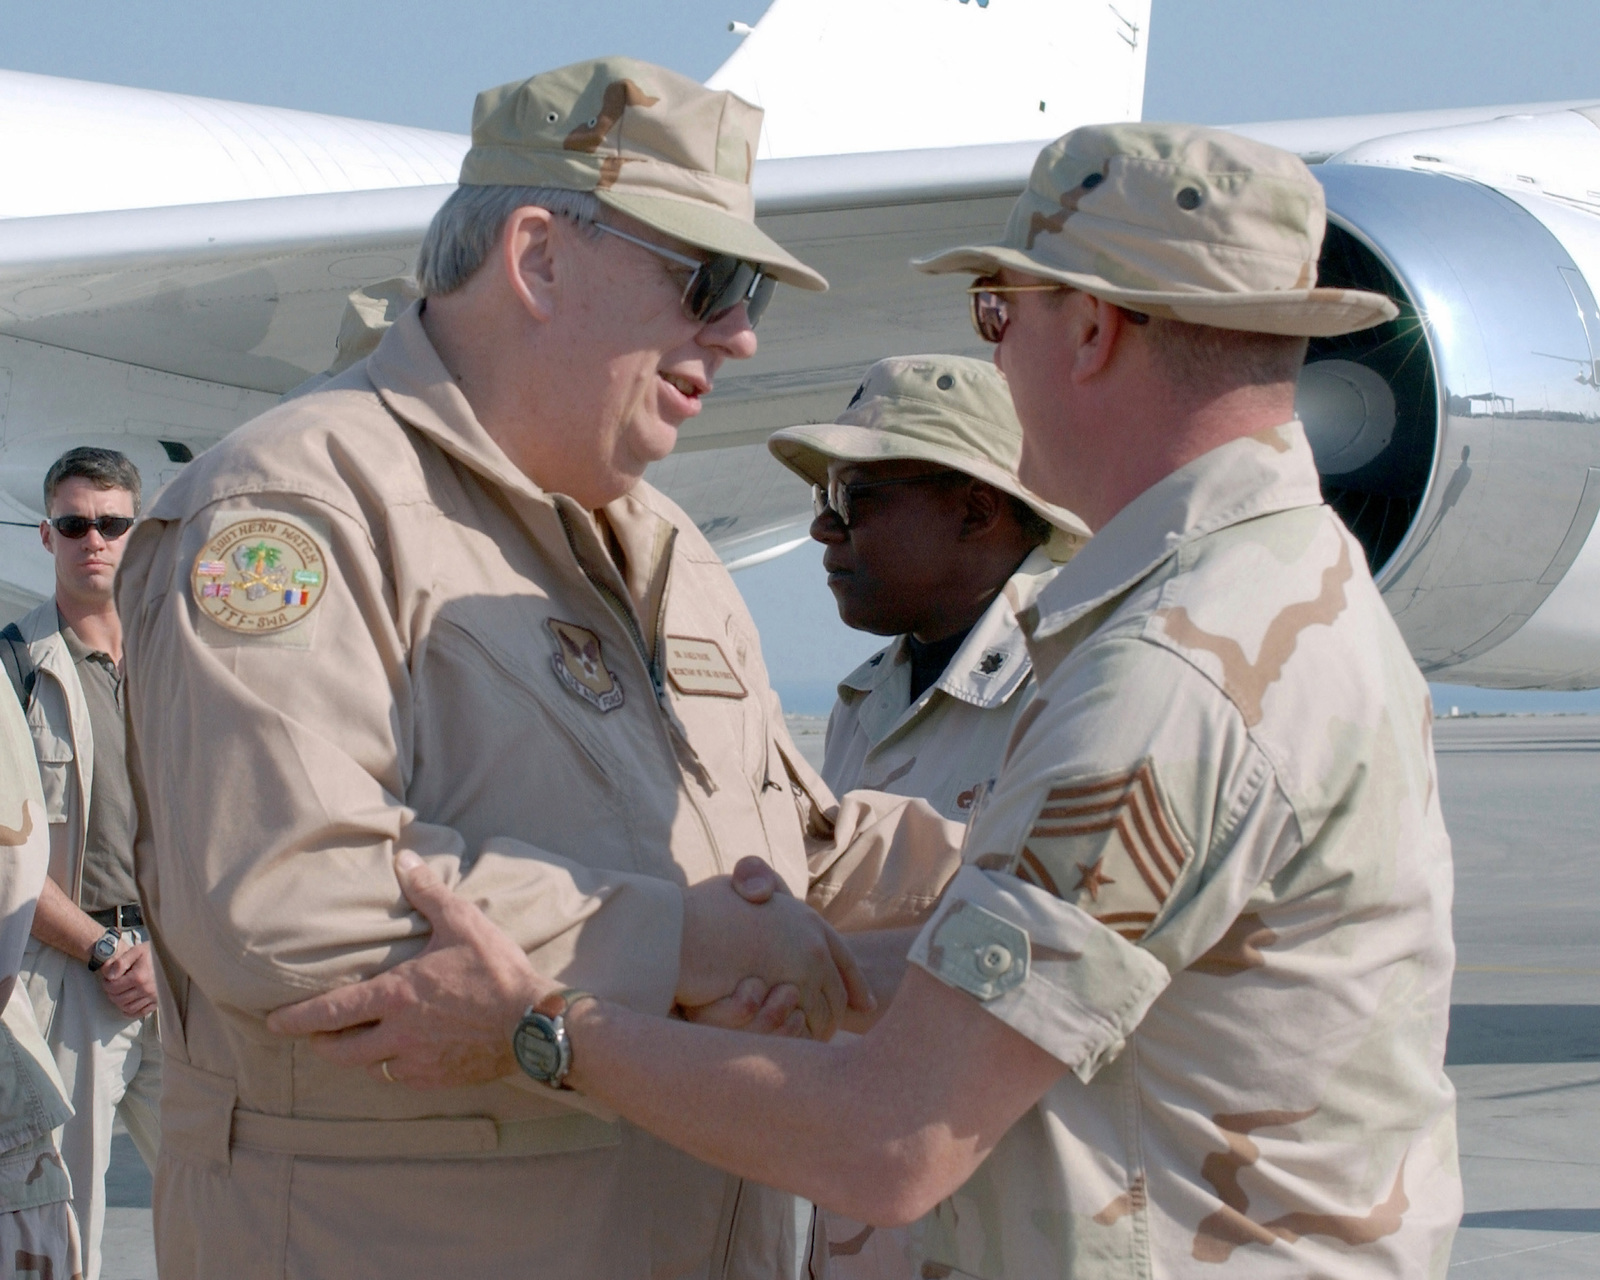 Secretary of the Air Force, The Honorable James G. Roche (left), is greeted by US Air Force (USAF) Command CHIEF MASTER Sergeant (CCMST) Patrick Melton, 319th Air Refueling Wing (ARW), upon his arrival at the forward operations base for the 319TH ARW, during Operation ENDURING FREEDOM